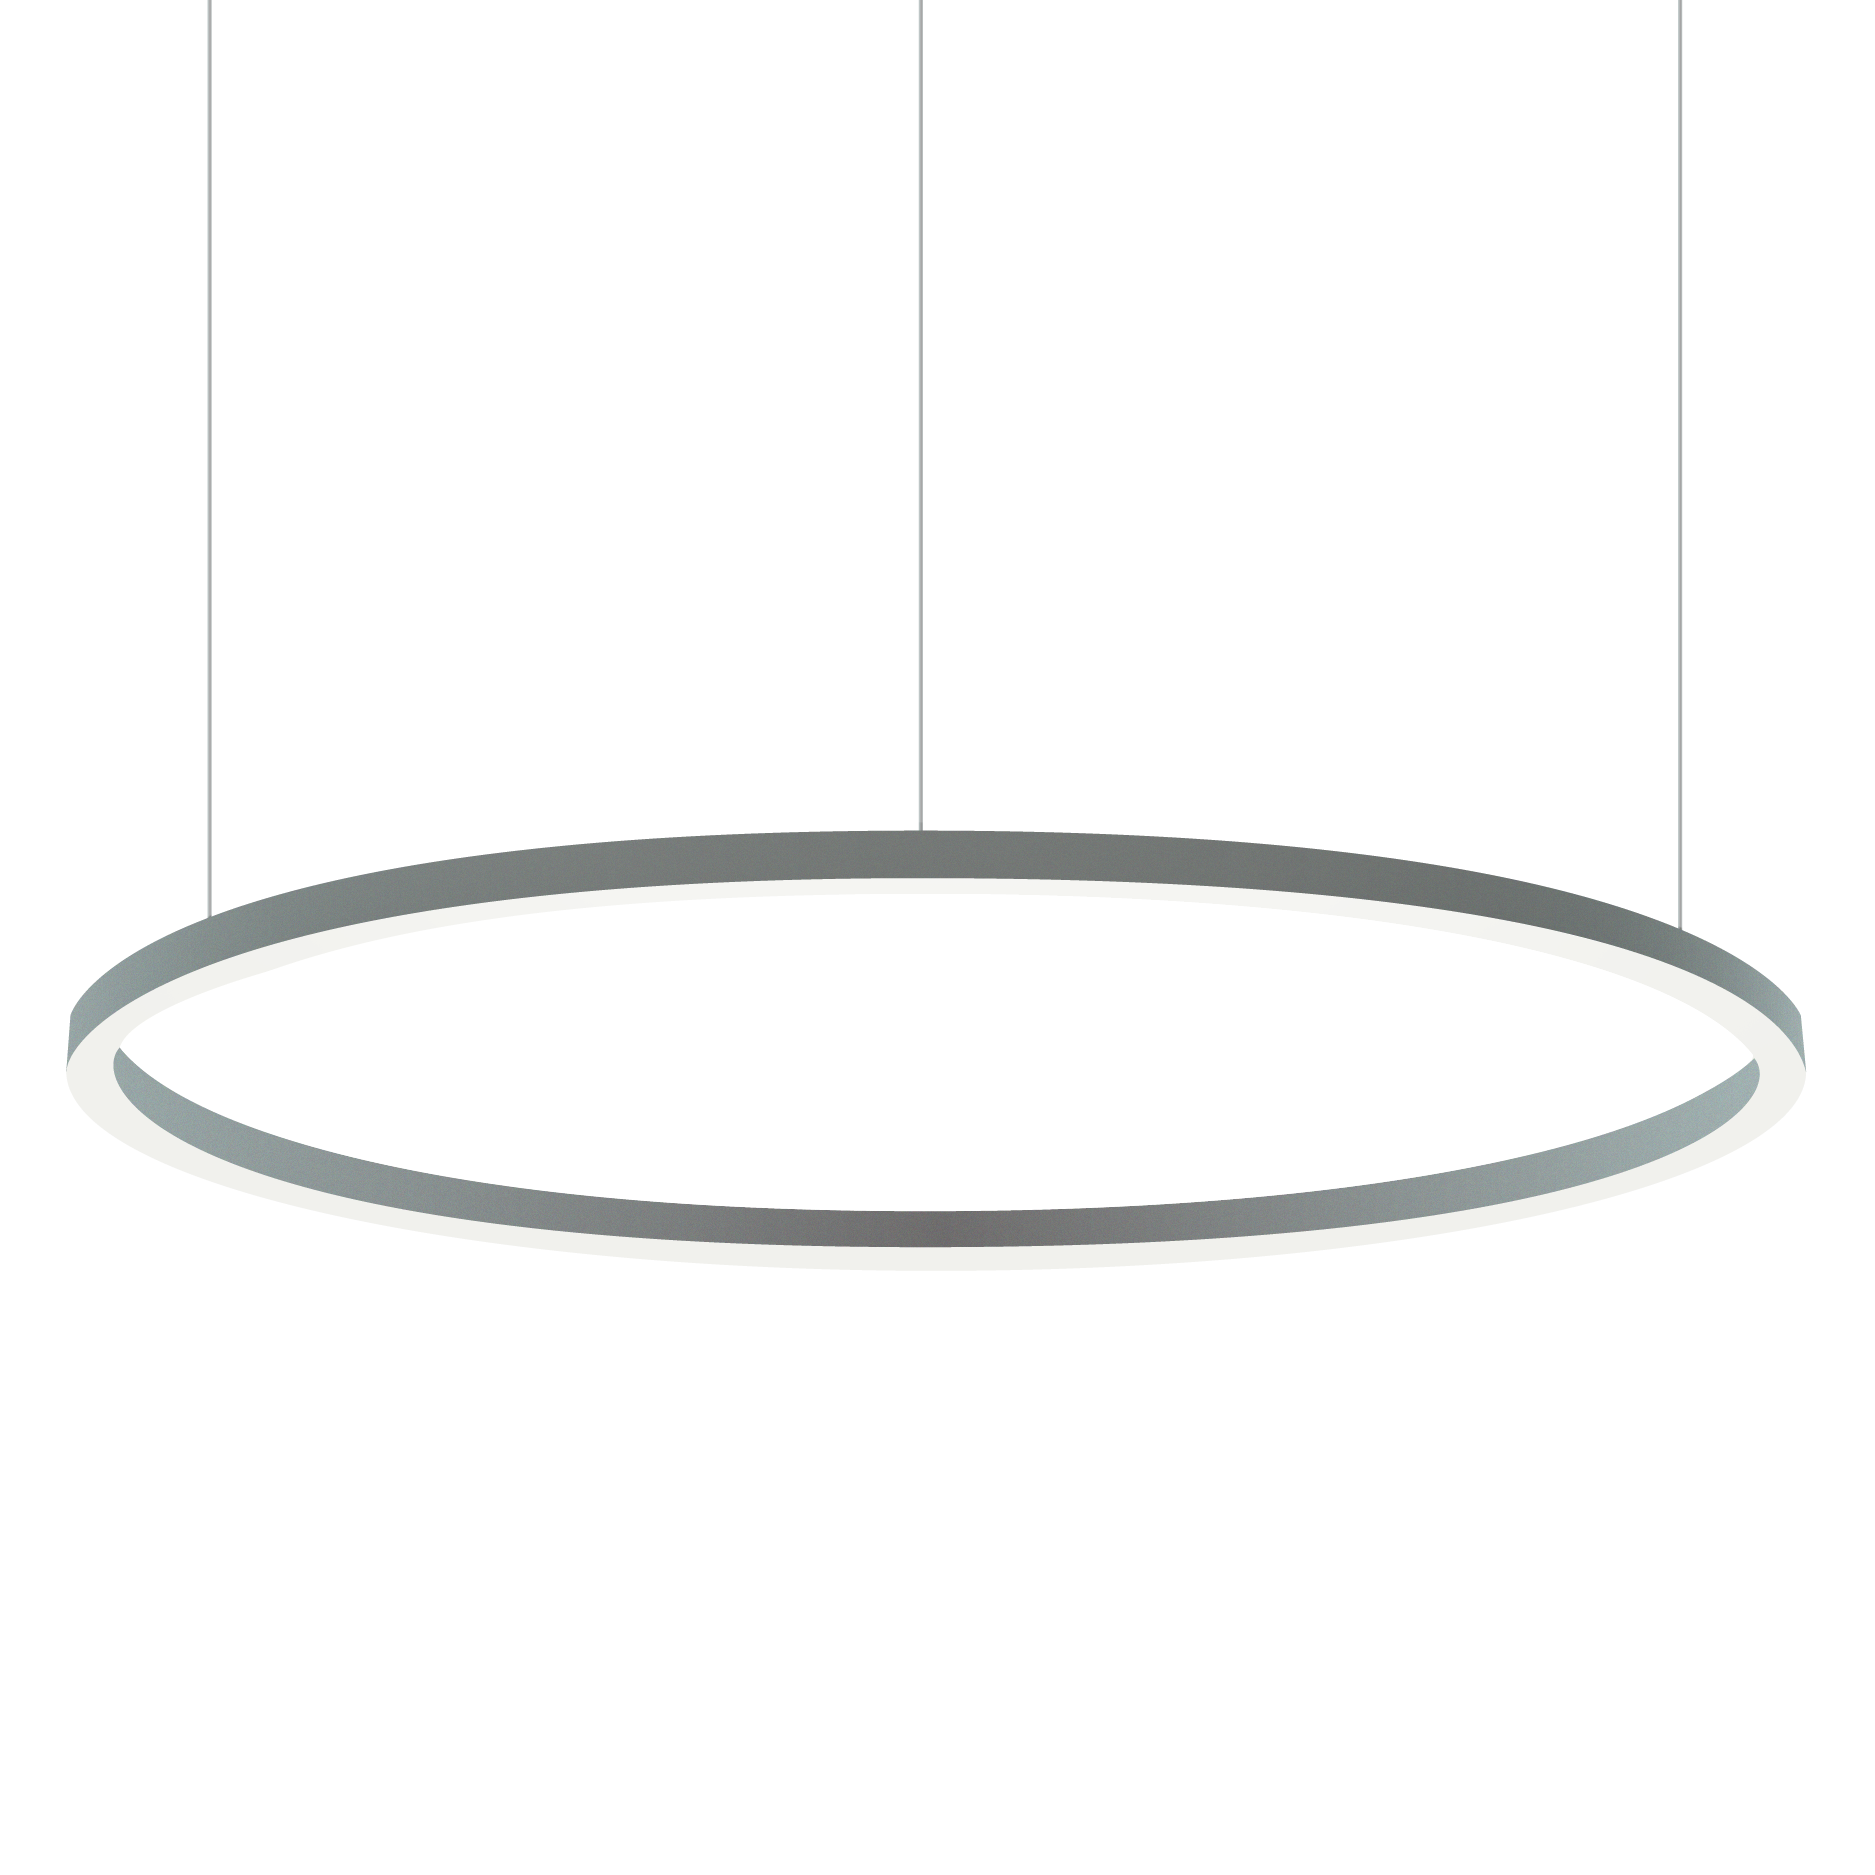 Alcon lighting 12253 circline architectural led circular pendant mount direct down light fixture